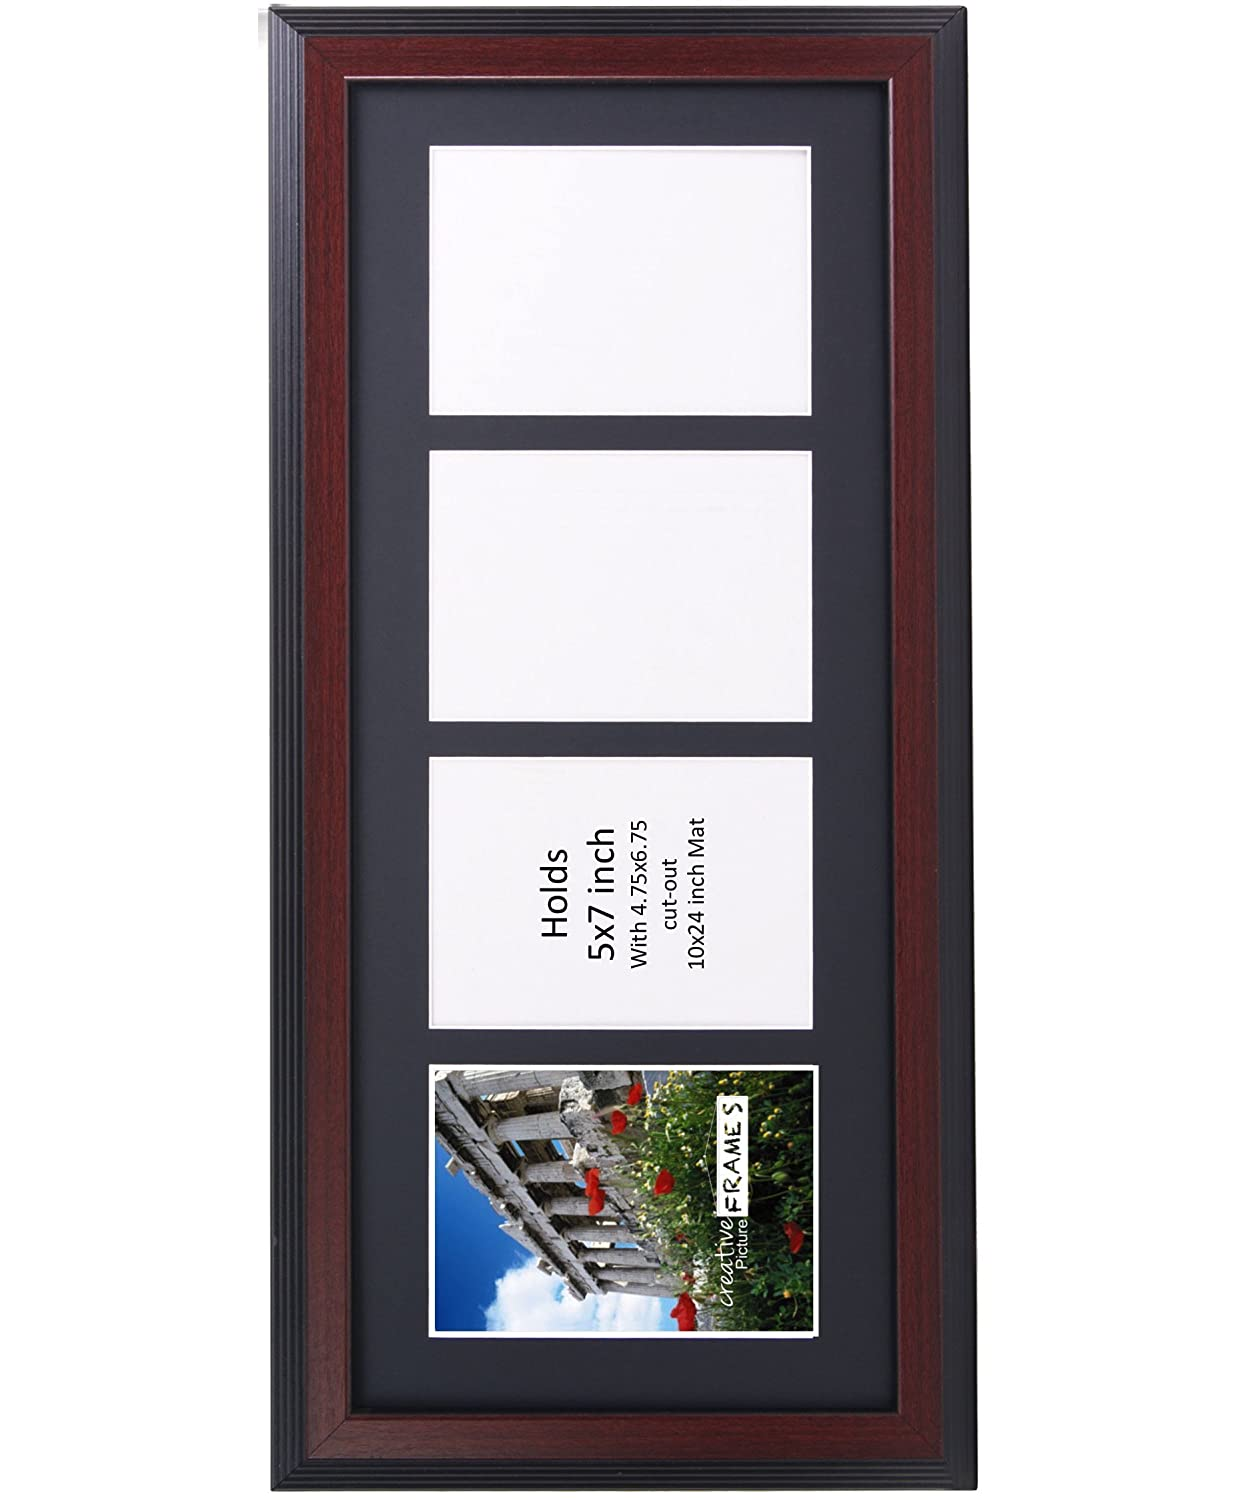 Creativepf 4 Opening Multi 5x7 Driftwood Picture Frame 10x24 Black